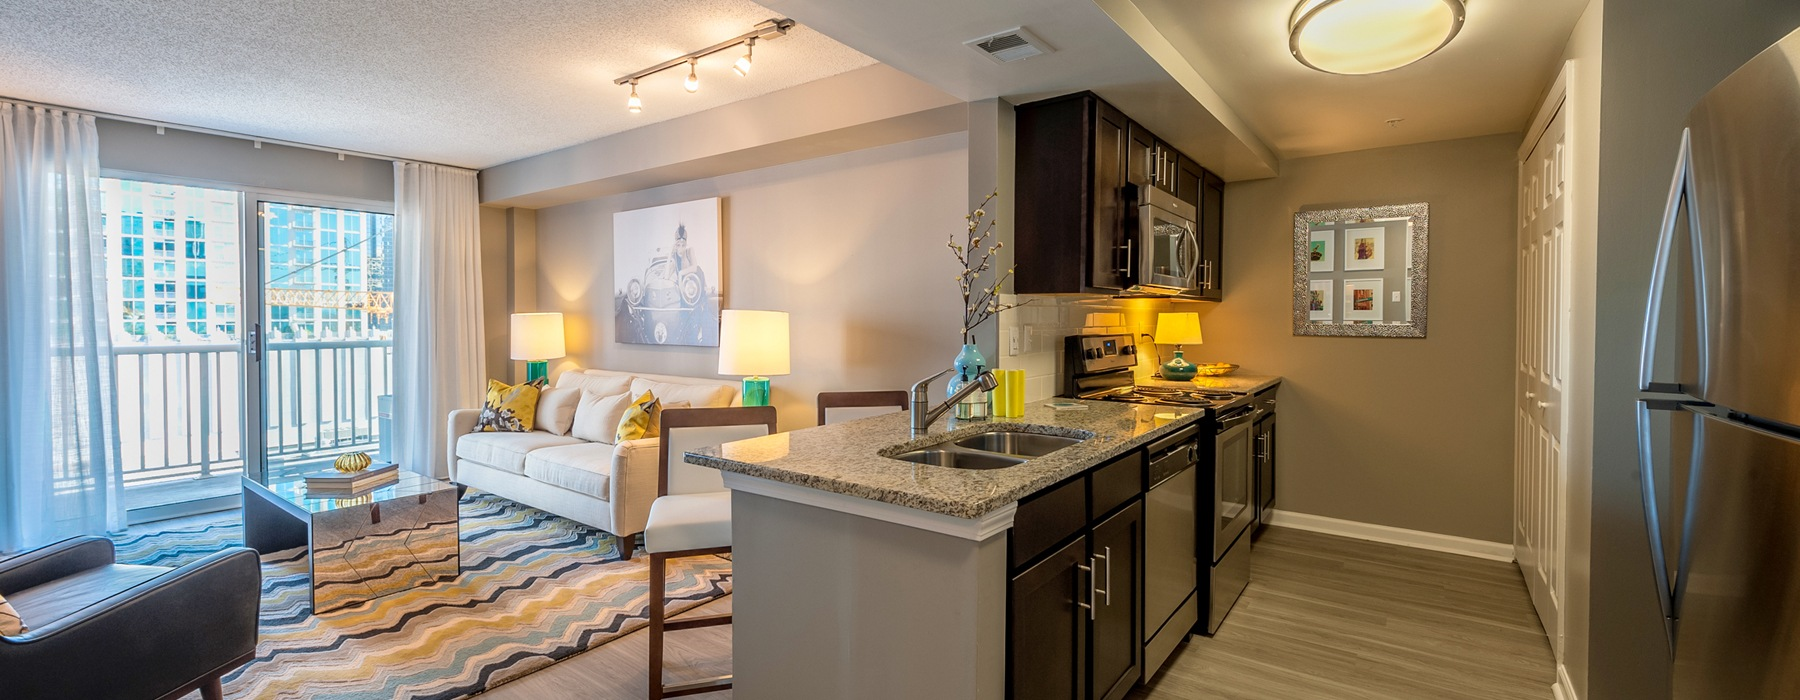 Available 1 & 2 Bedroom Apartments In Nashville, TN